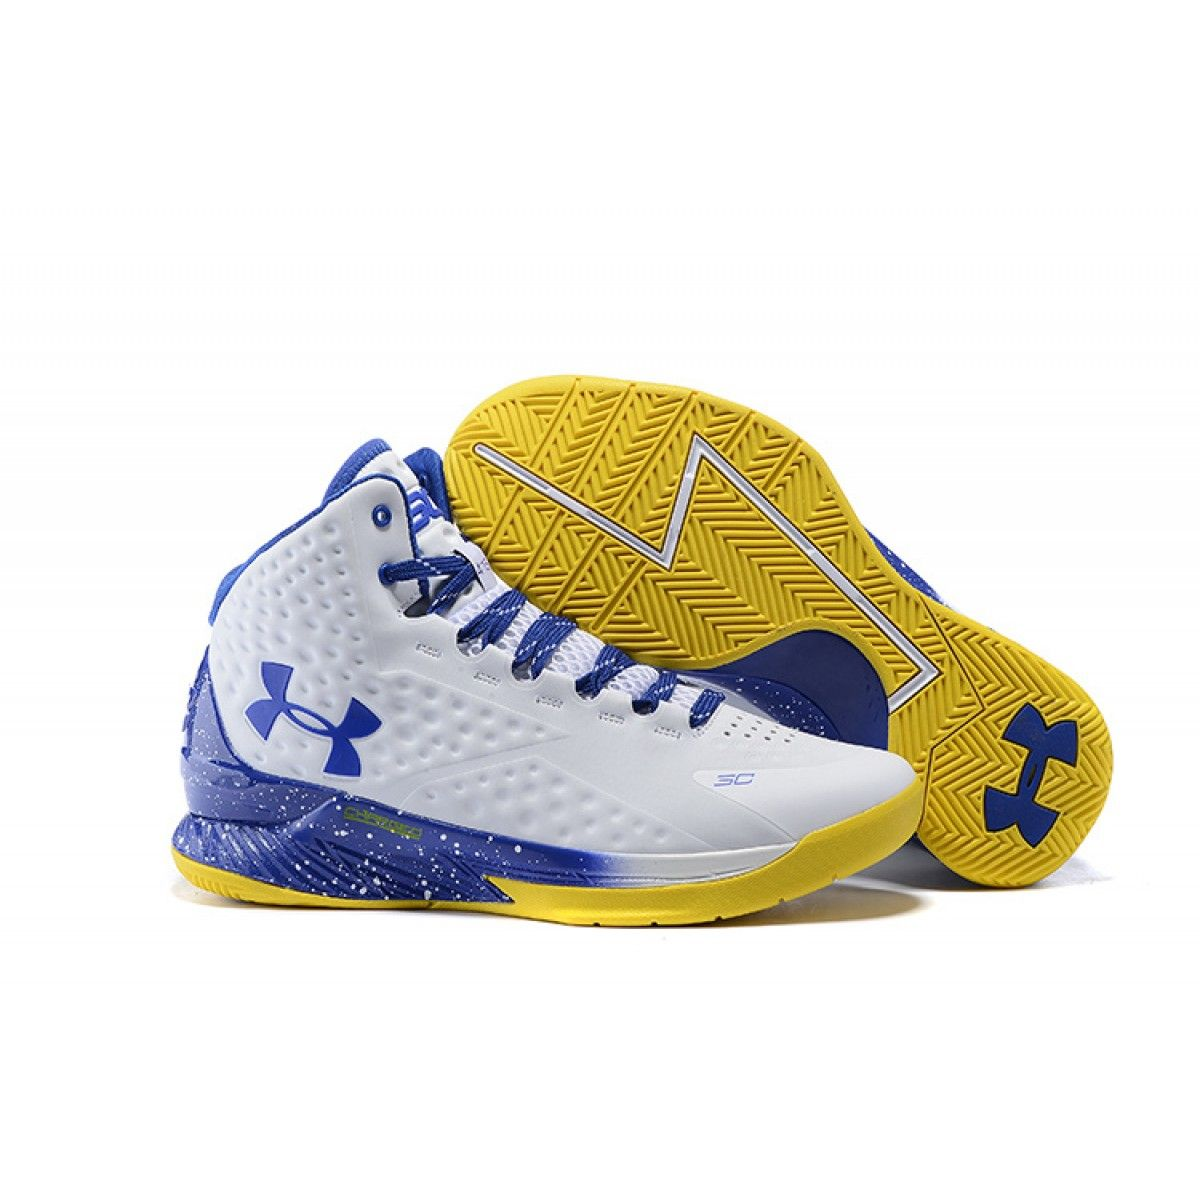 under armour curry 1 zapatillas de baloncesto